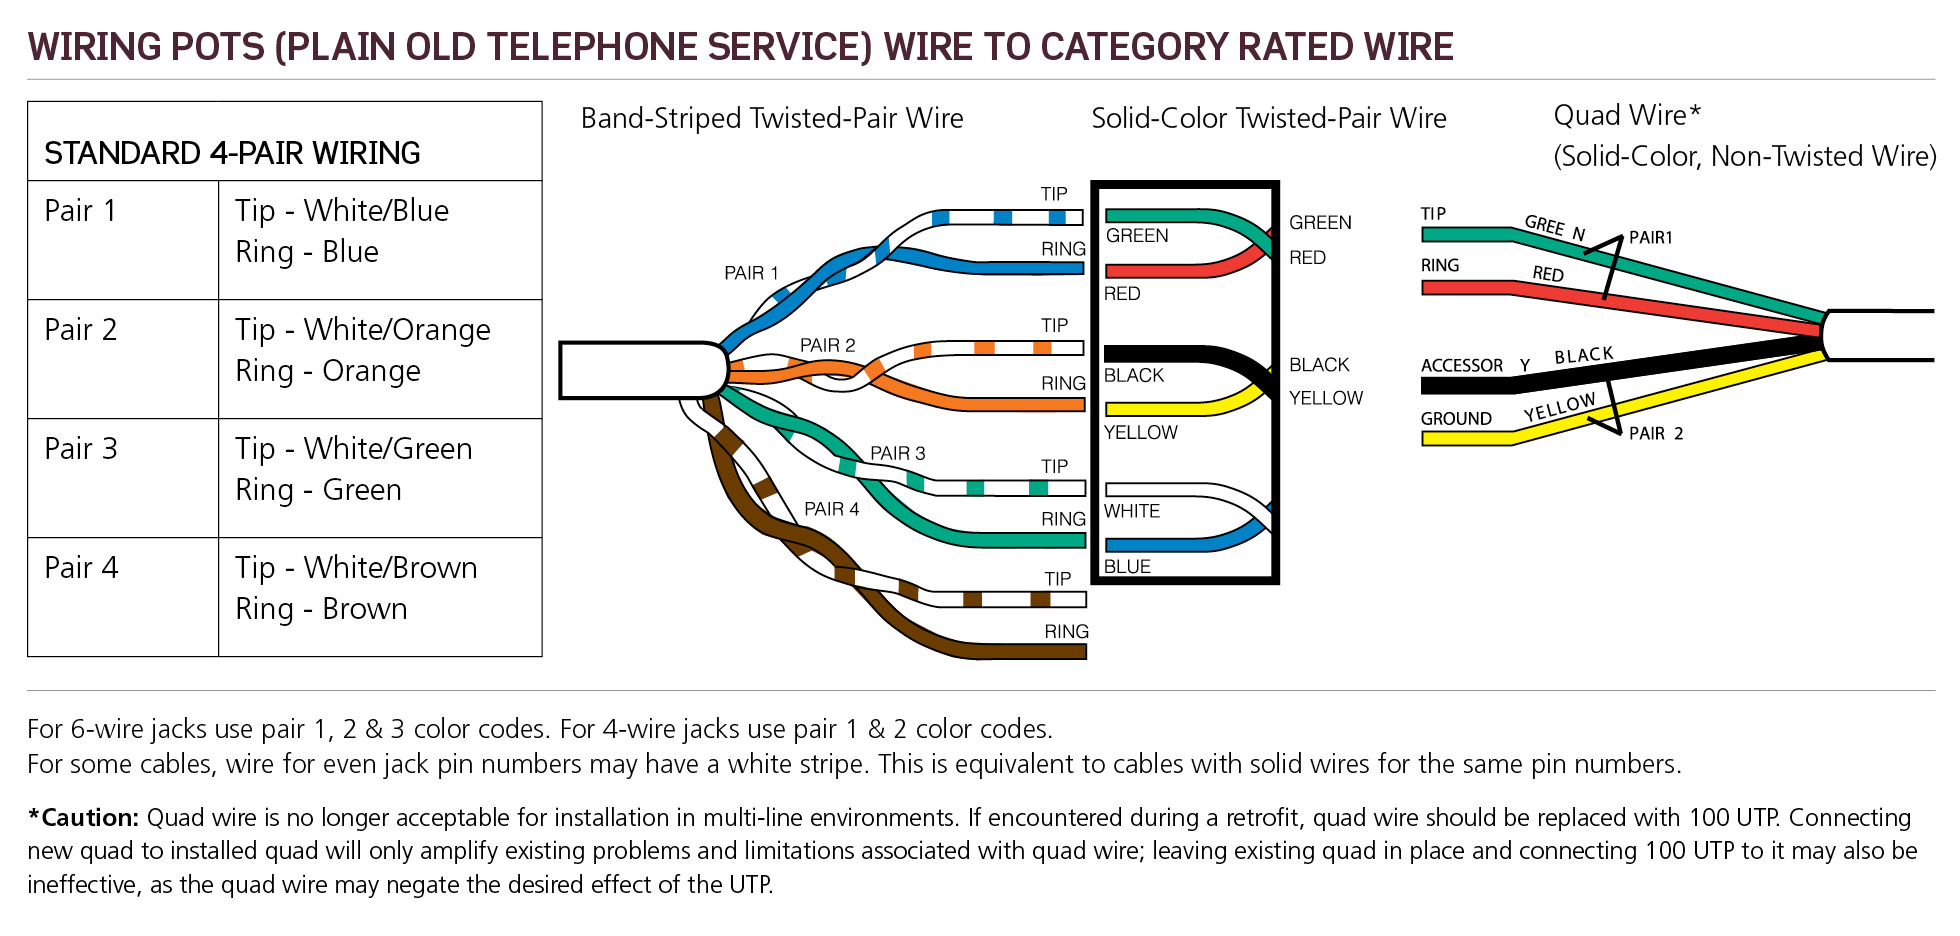 small resolution of avaya phone wiring color code automotive wiring diagrams camera system wiring diagrams on cat 5 wiring color code diagram